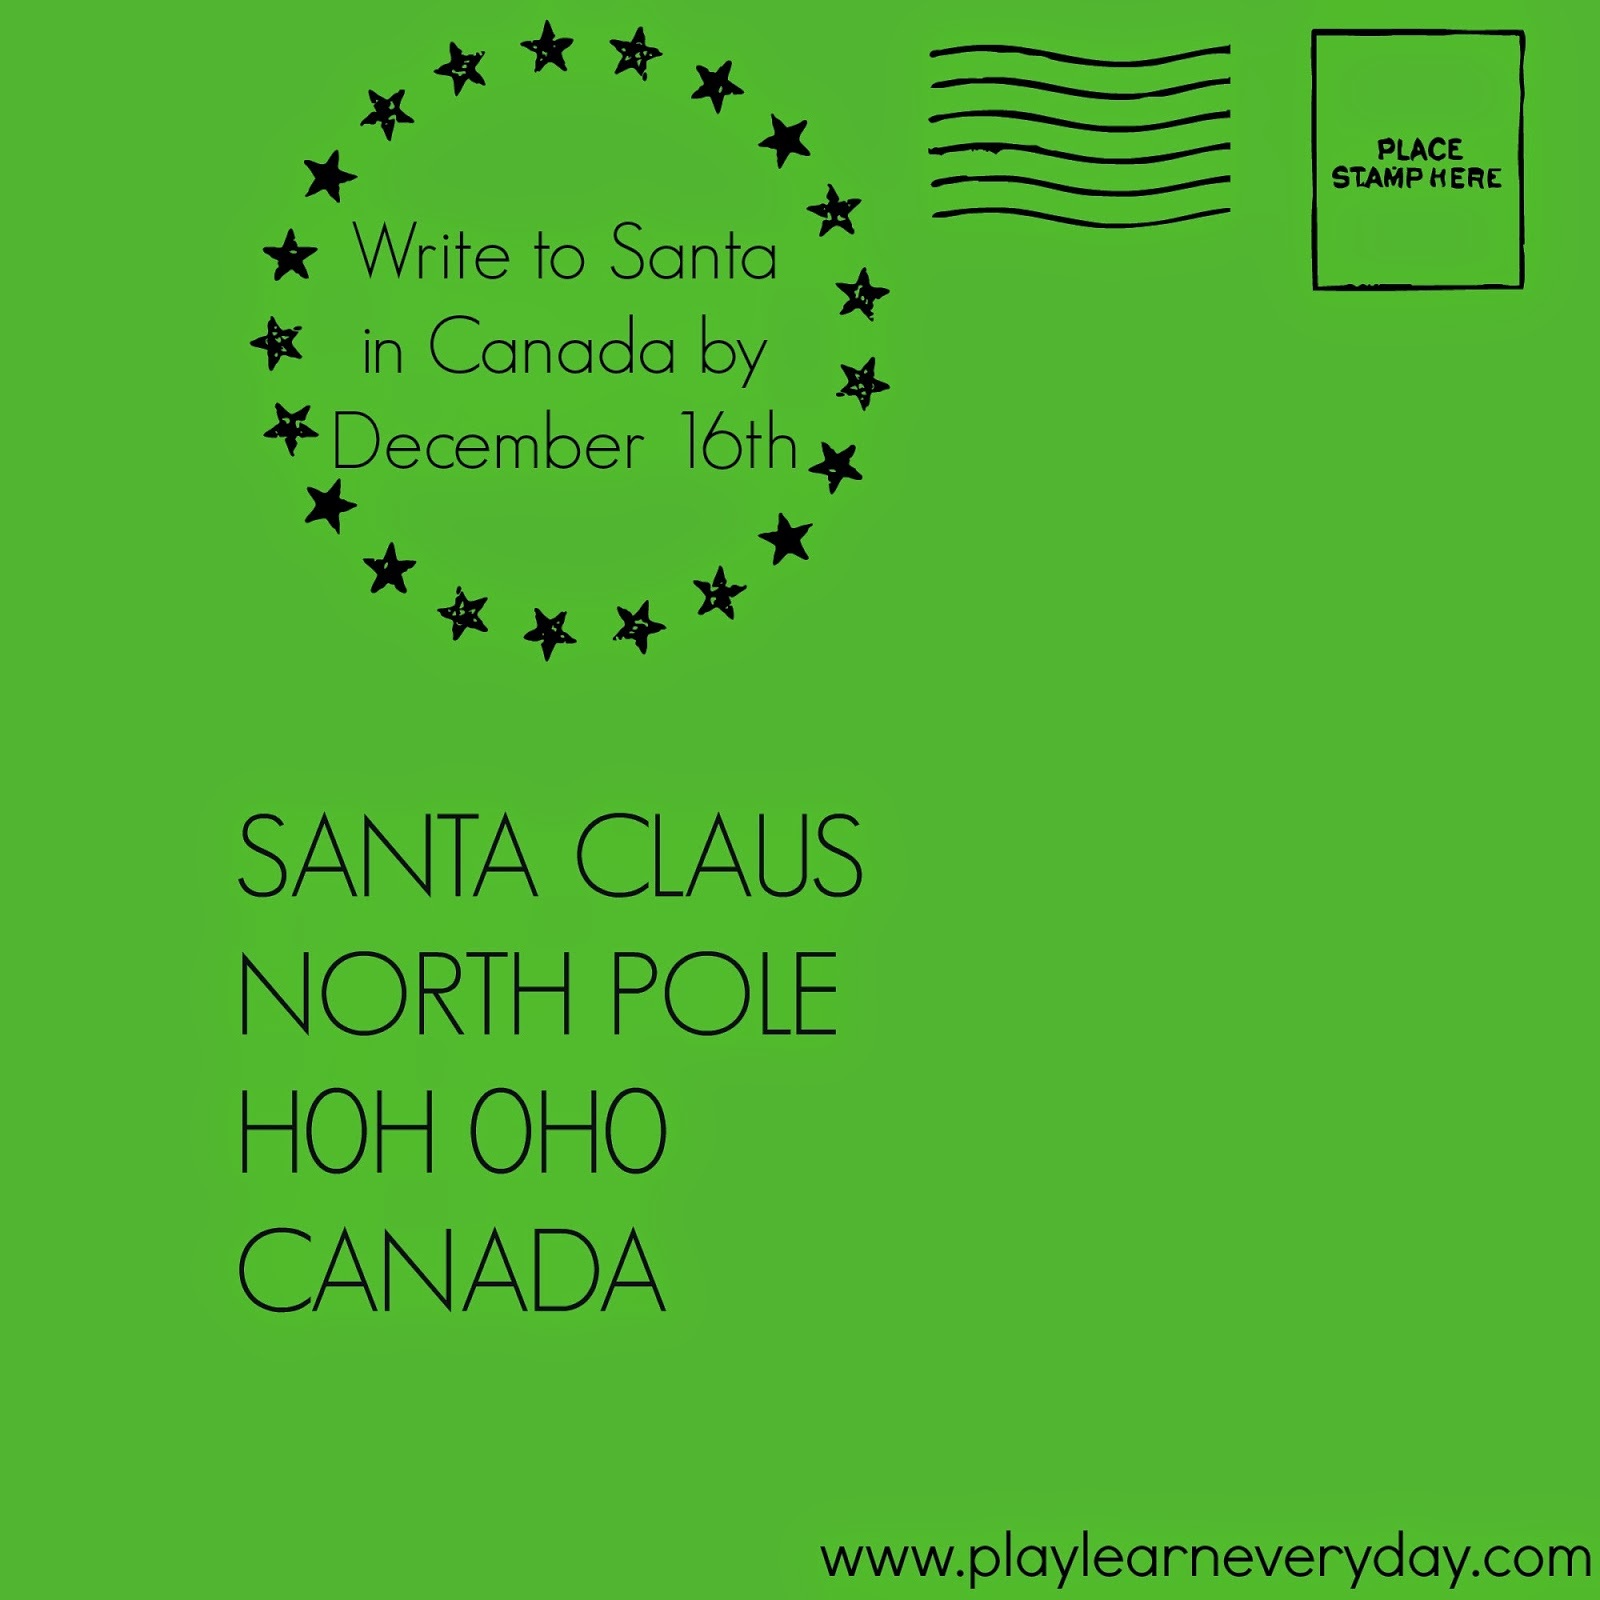 Children in Canada also receive Letters from Santa Claus